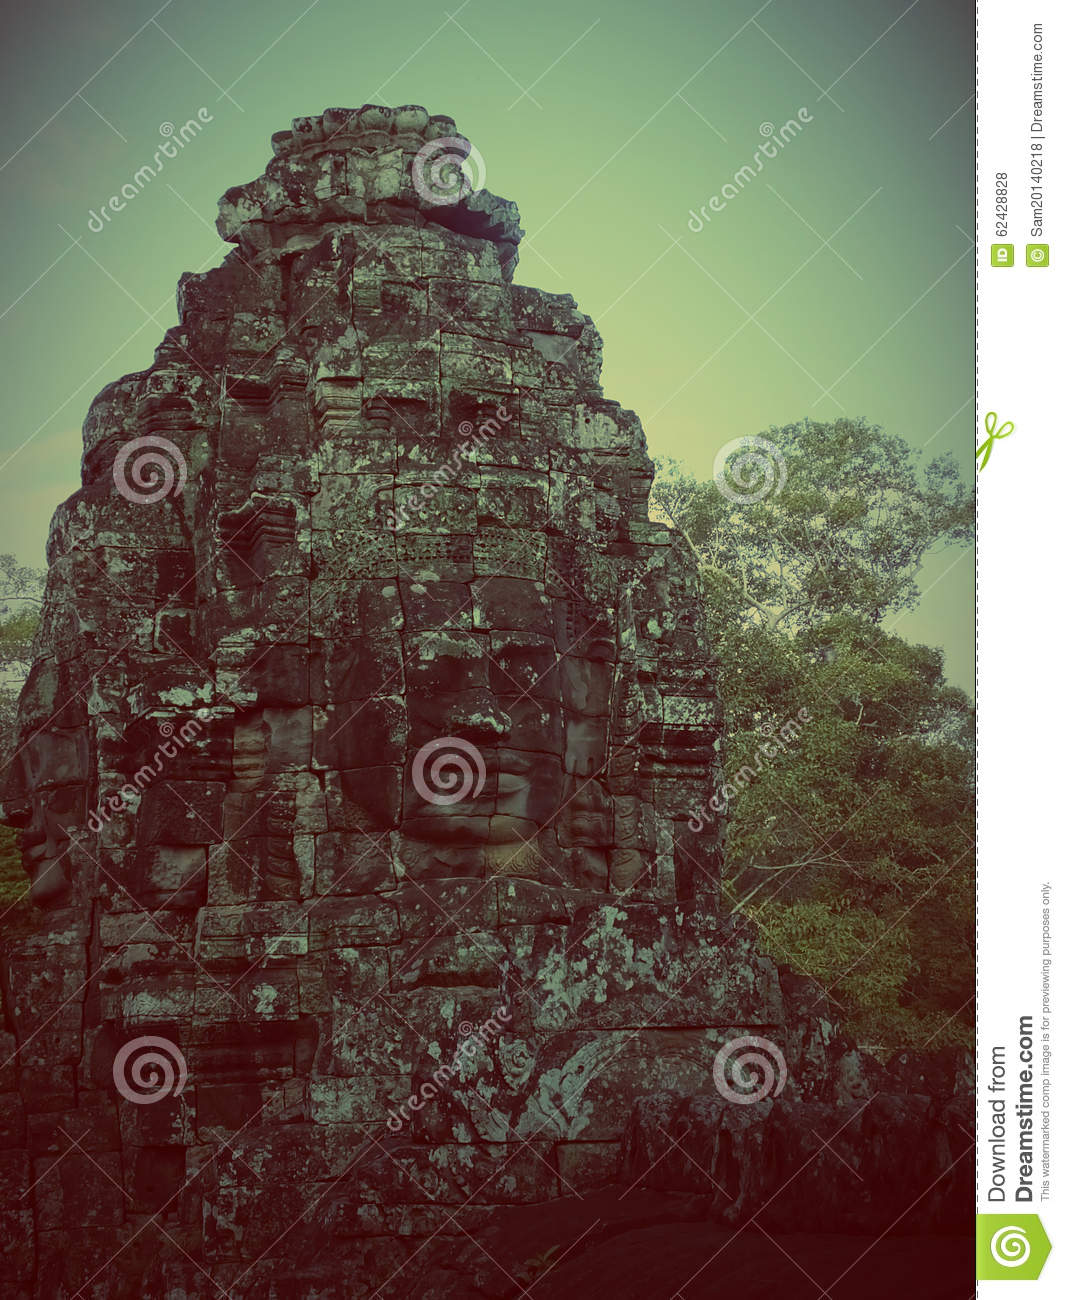 Faces of Bayon tample. Ankor wat. Cambodia.